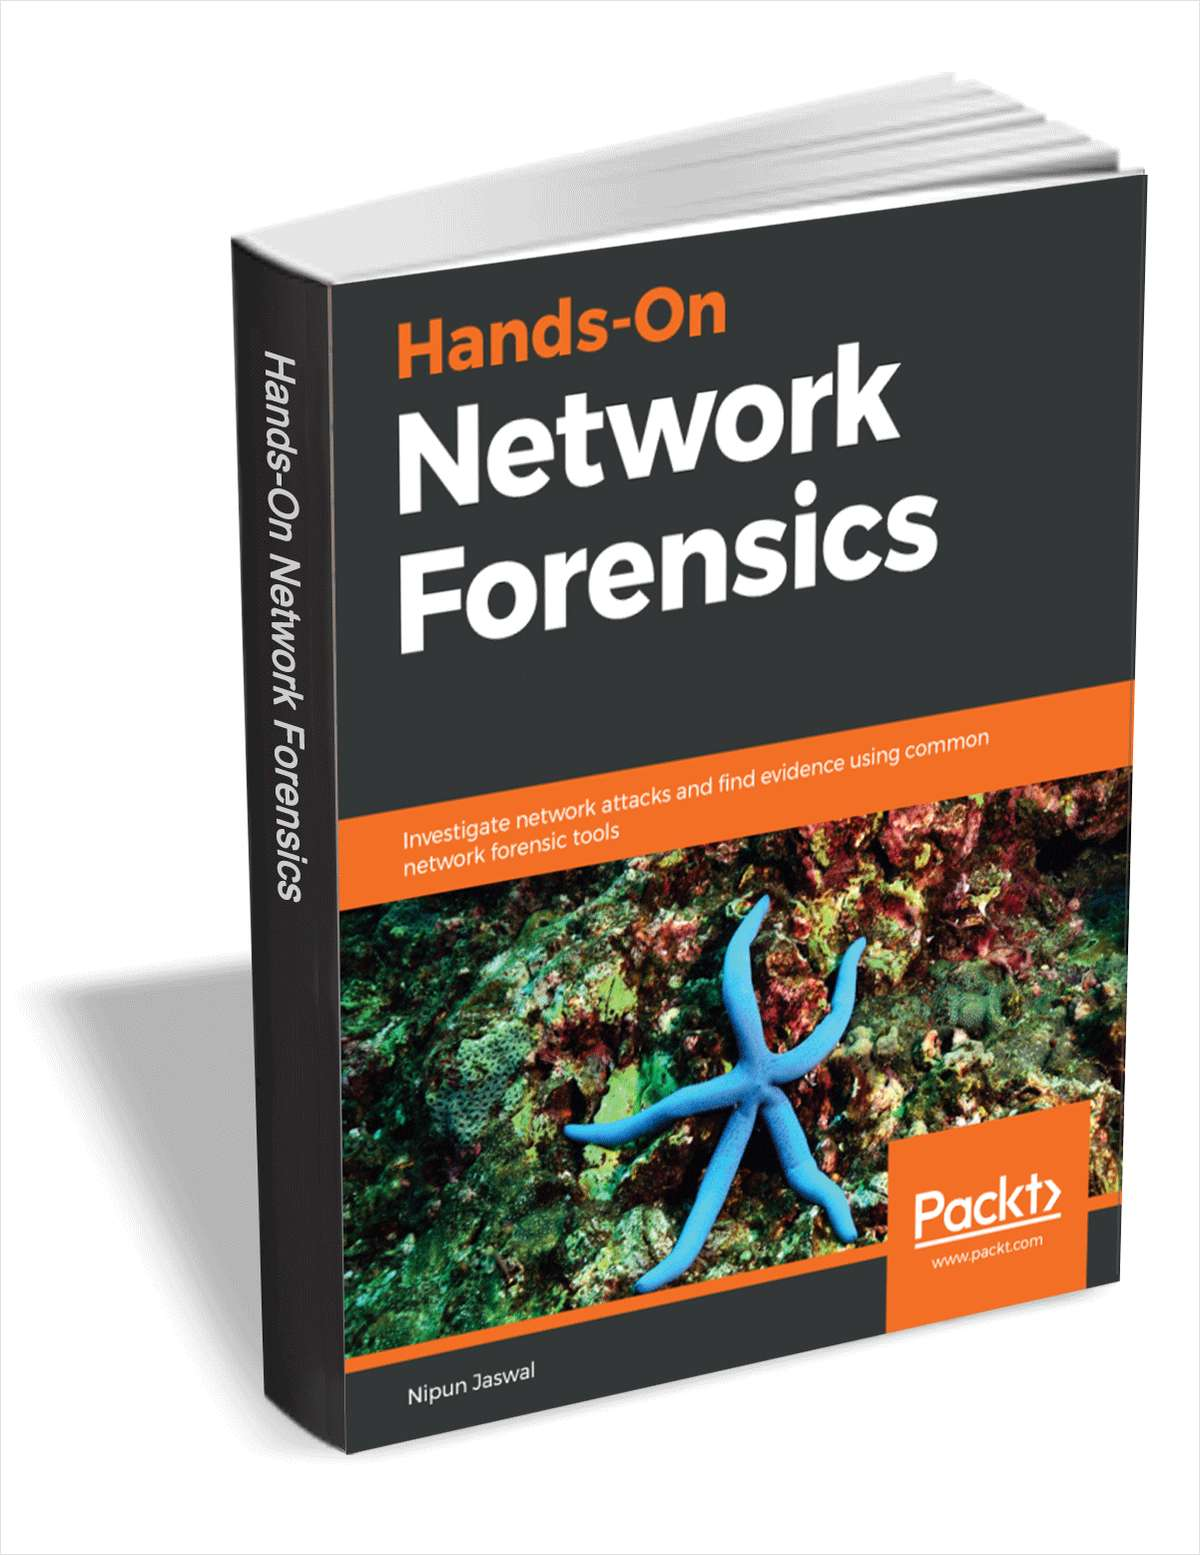 Hands-On Network Forensics ($20 Value) FREE For a Limited Time